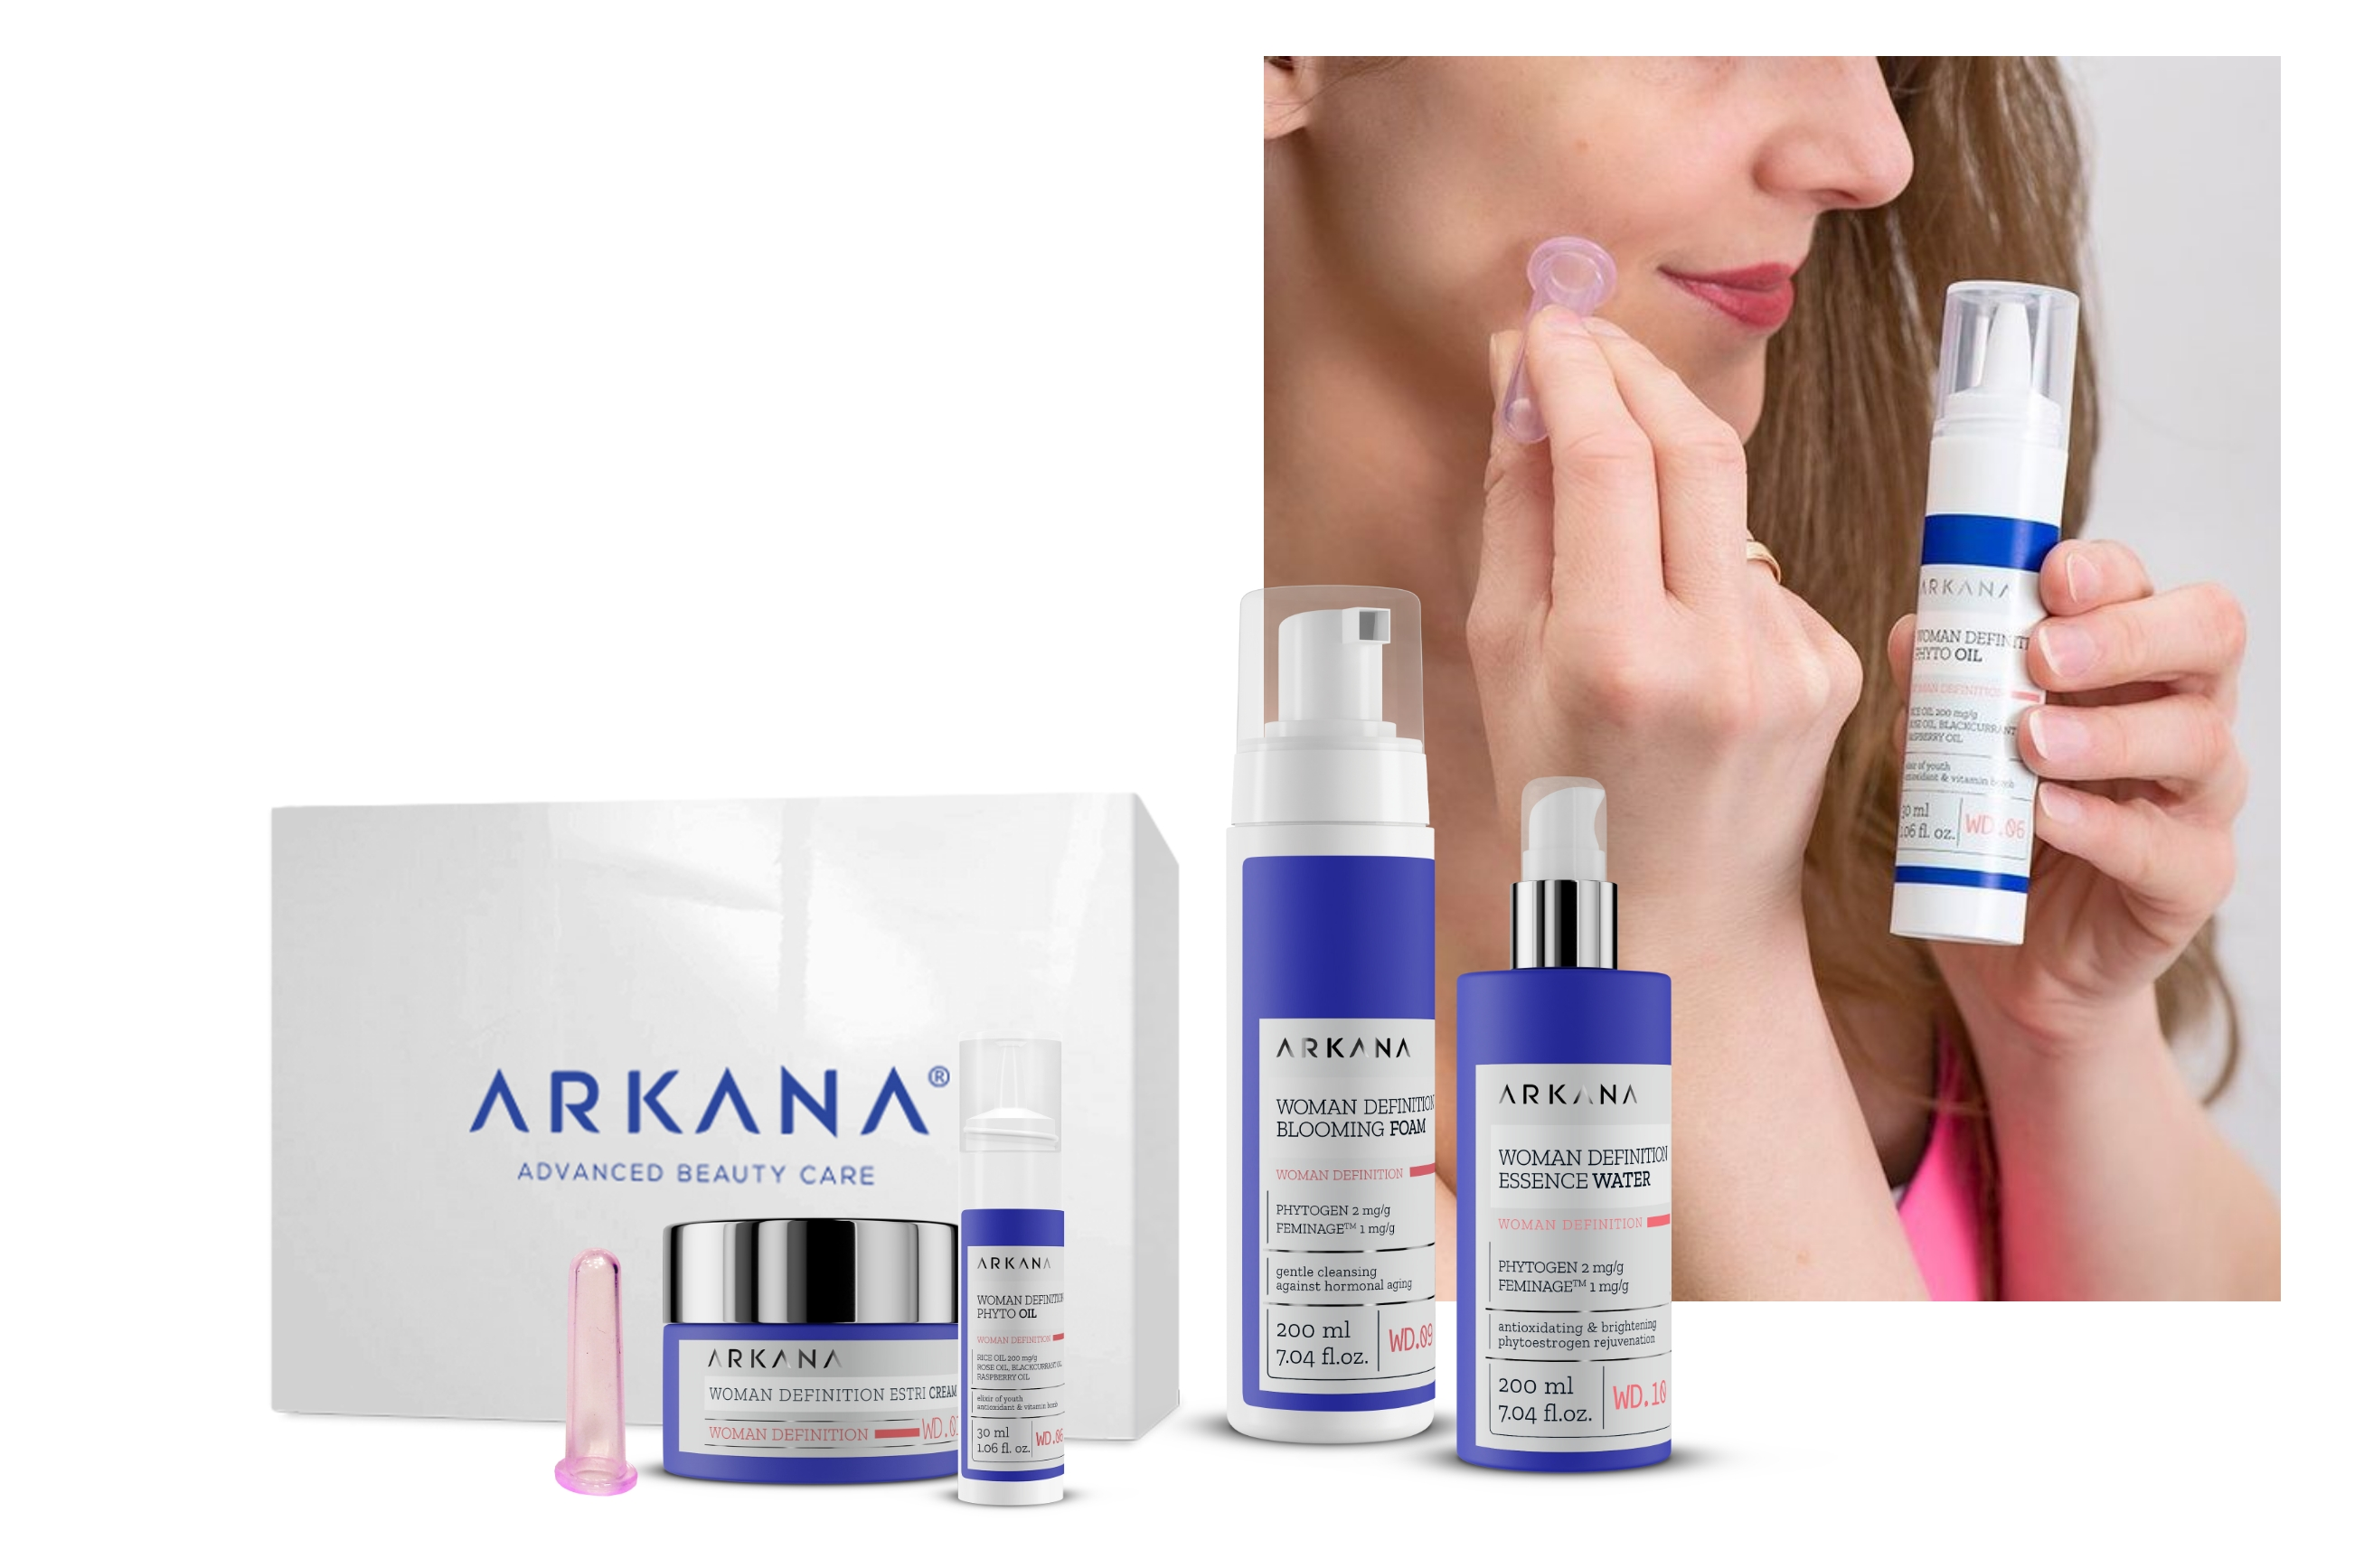 woman-definition-therapy-arkana-spain.jp